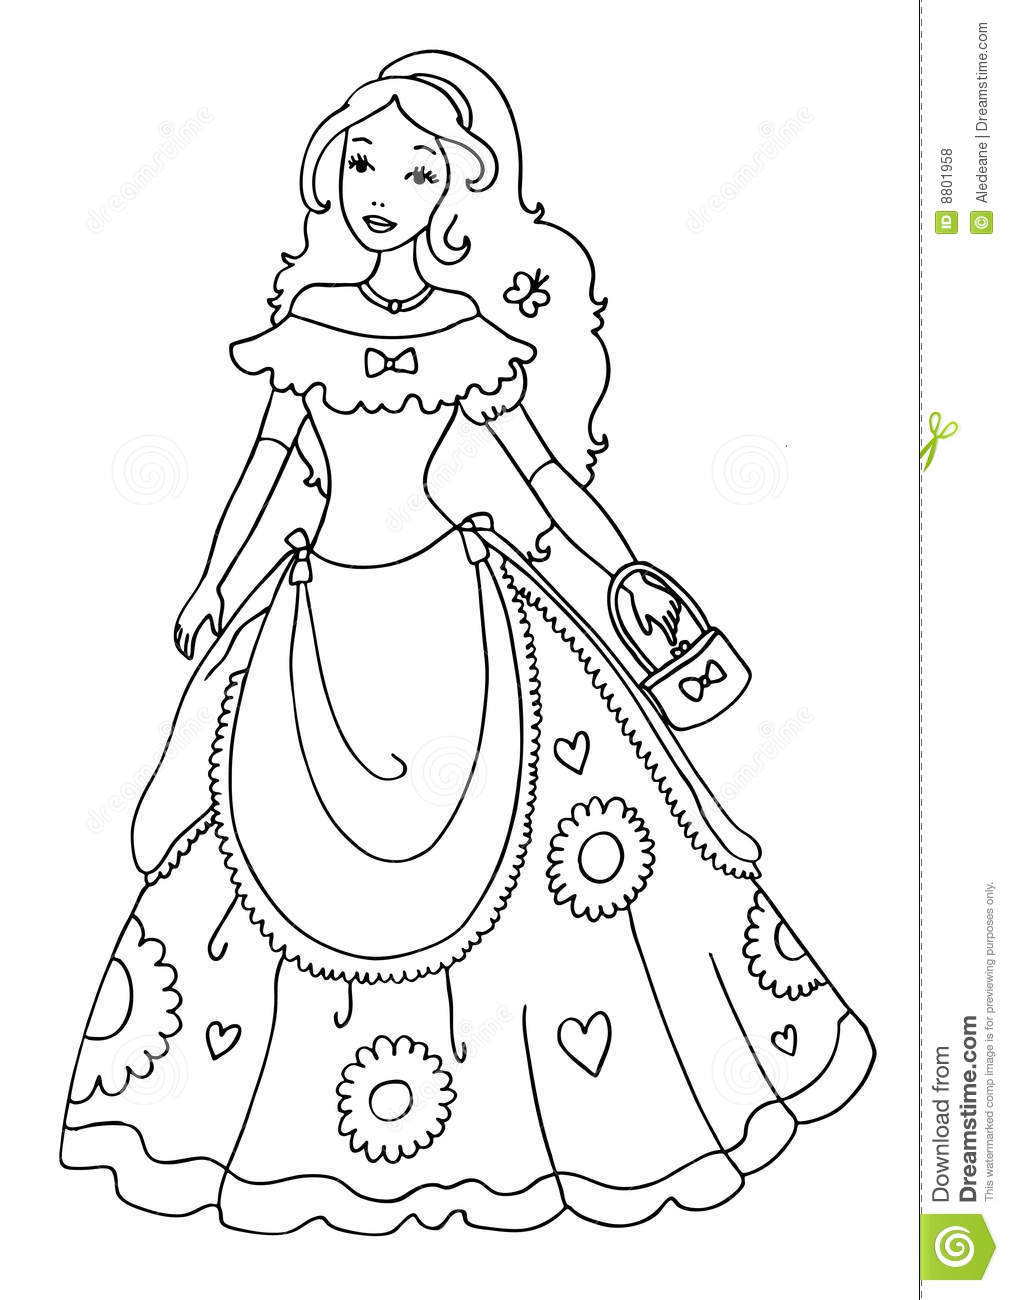 Princess Coloring Page stock illustration. Illustration of education ...